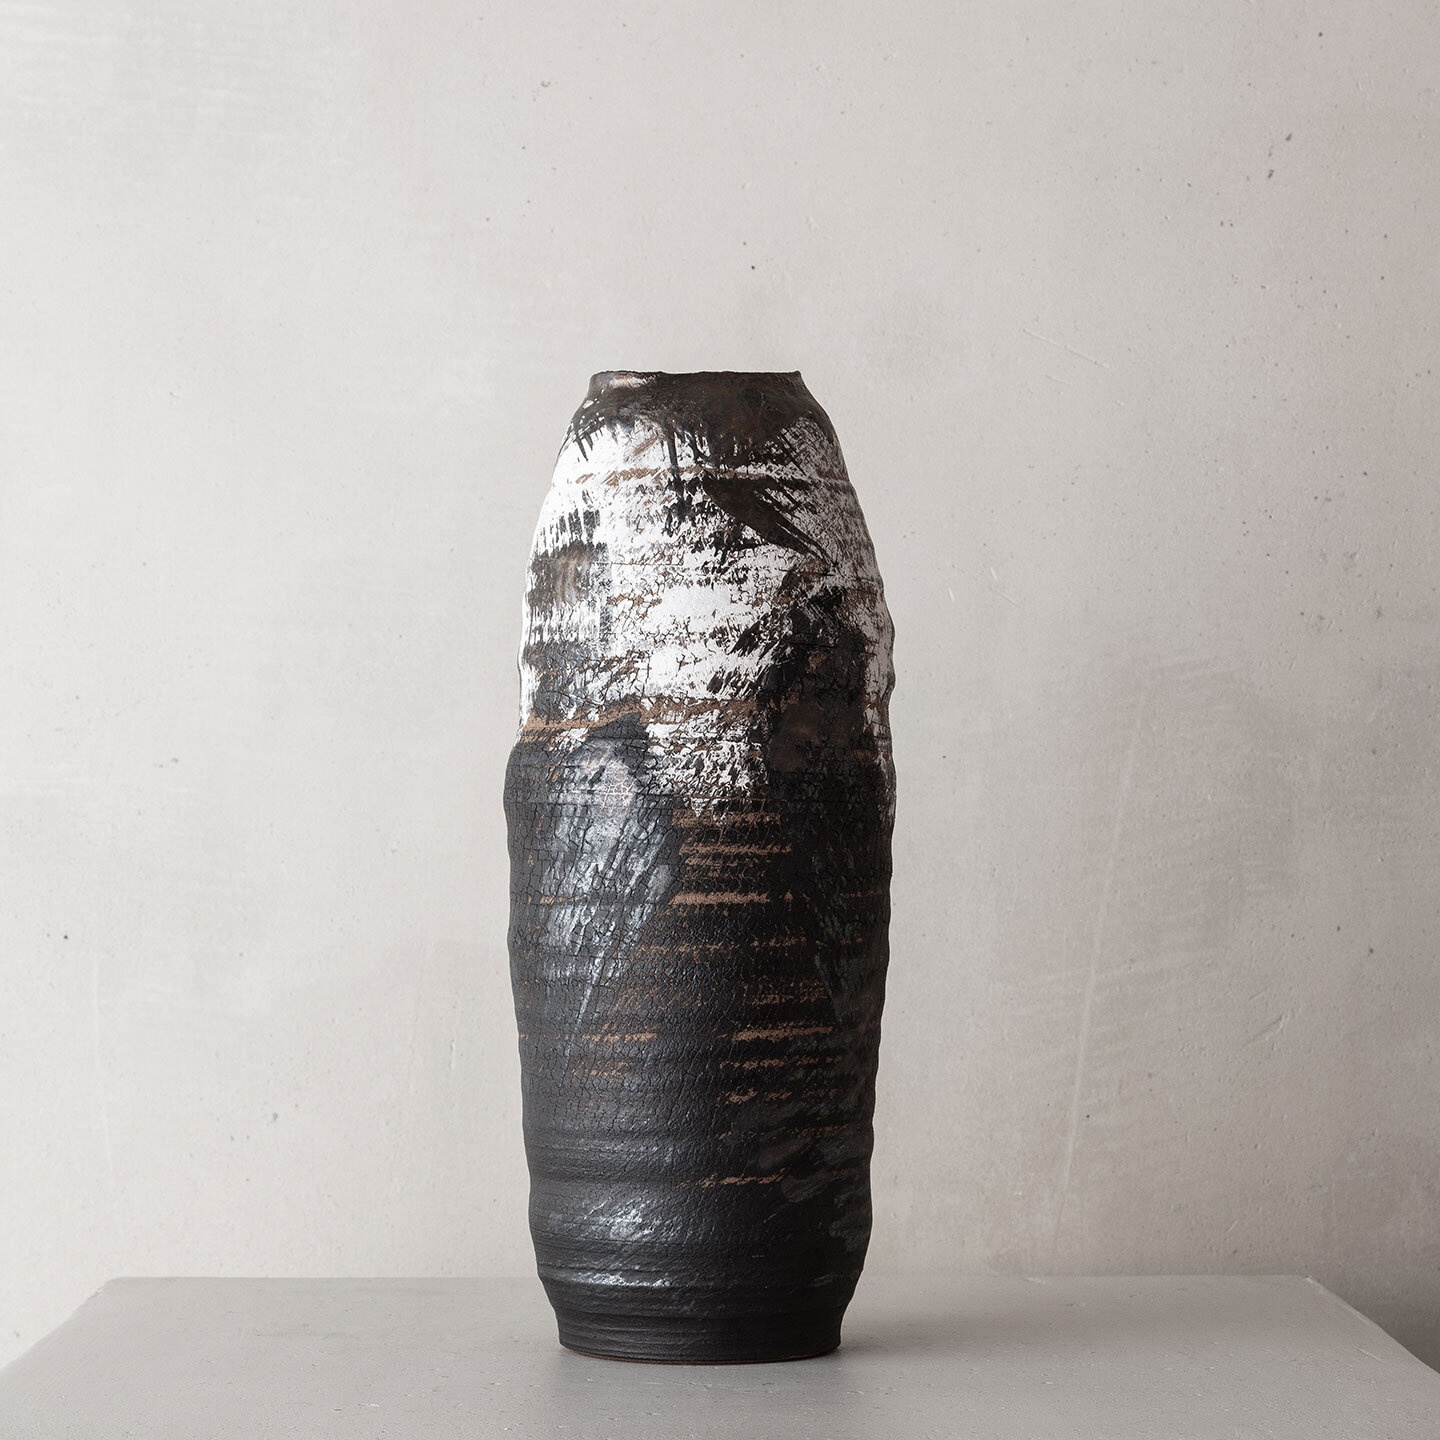 CHTHONIC VESSEL 43Peter Speliopoulos, Peter Speliopoulos Ceramics, Peter Speliopoulos Artist, Peter Speliopoulos Fashion Designer, Contemporary Ceramics, Contemporary Greek Ceramics, Interior Design Accessories.